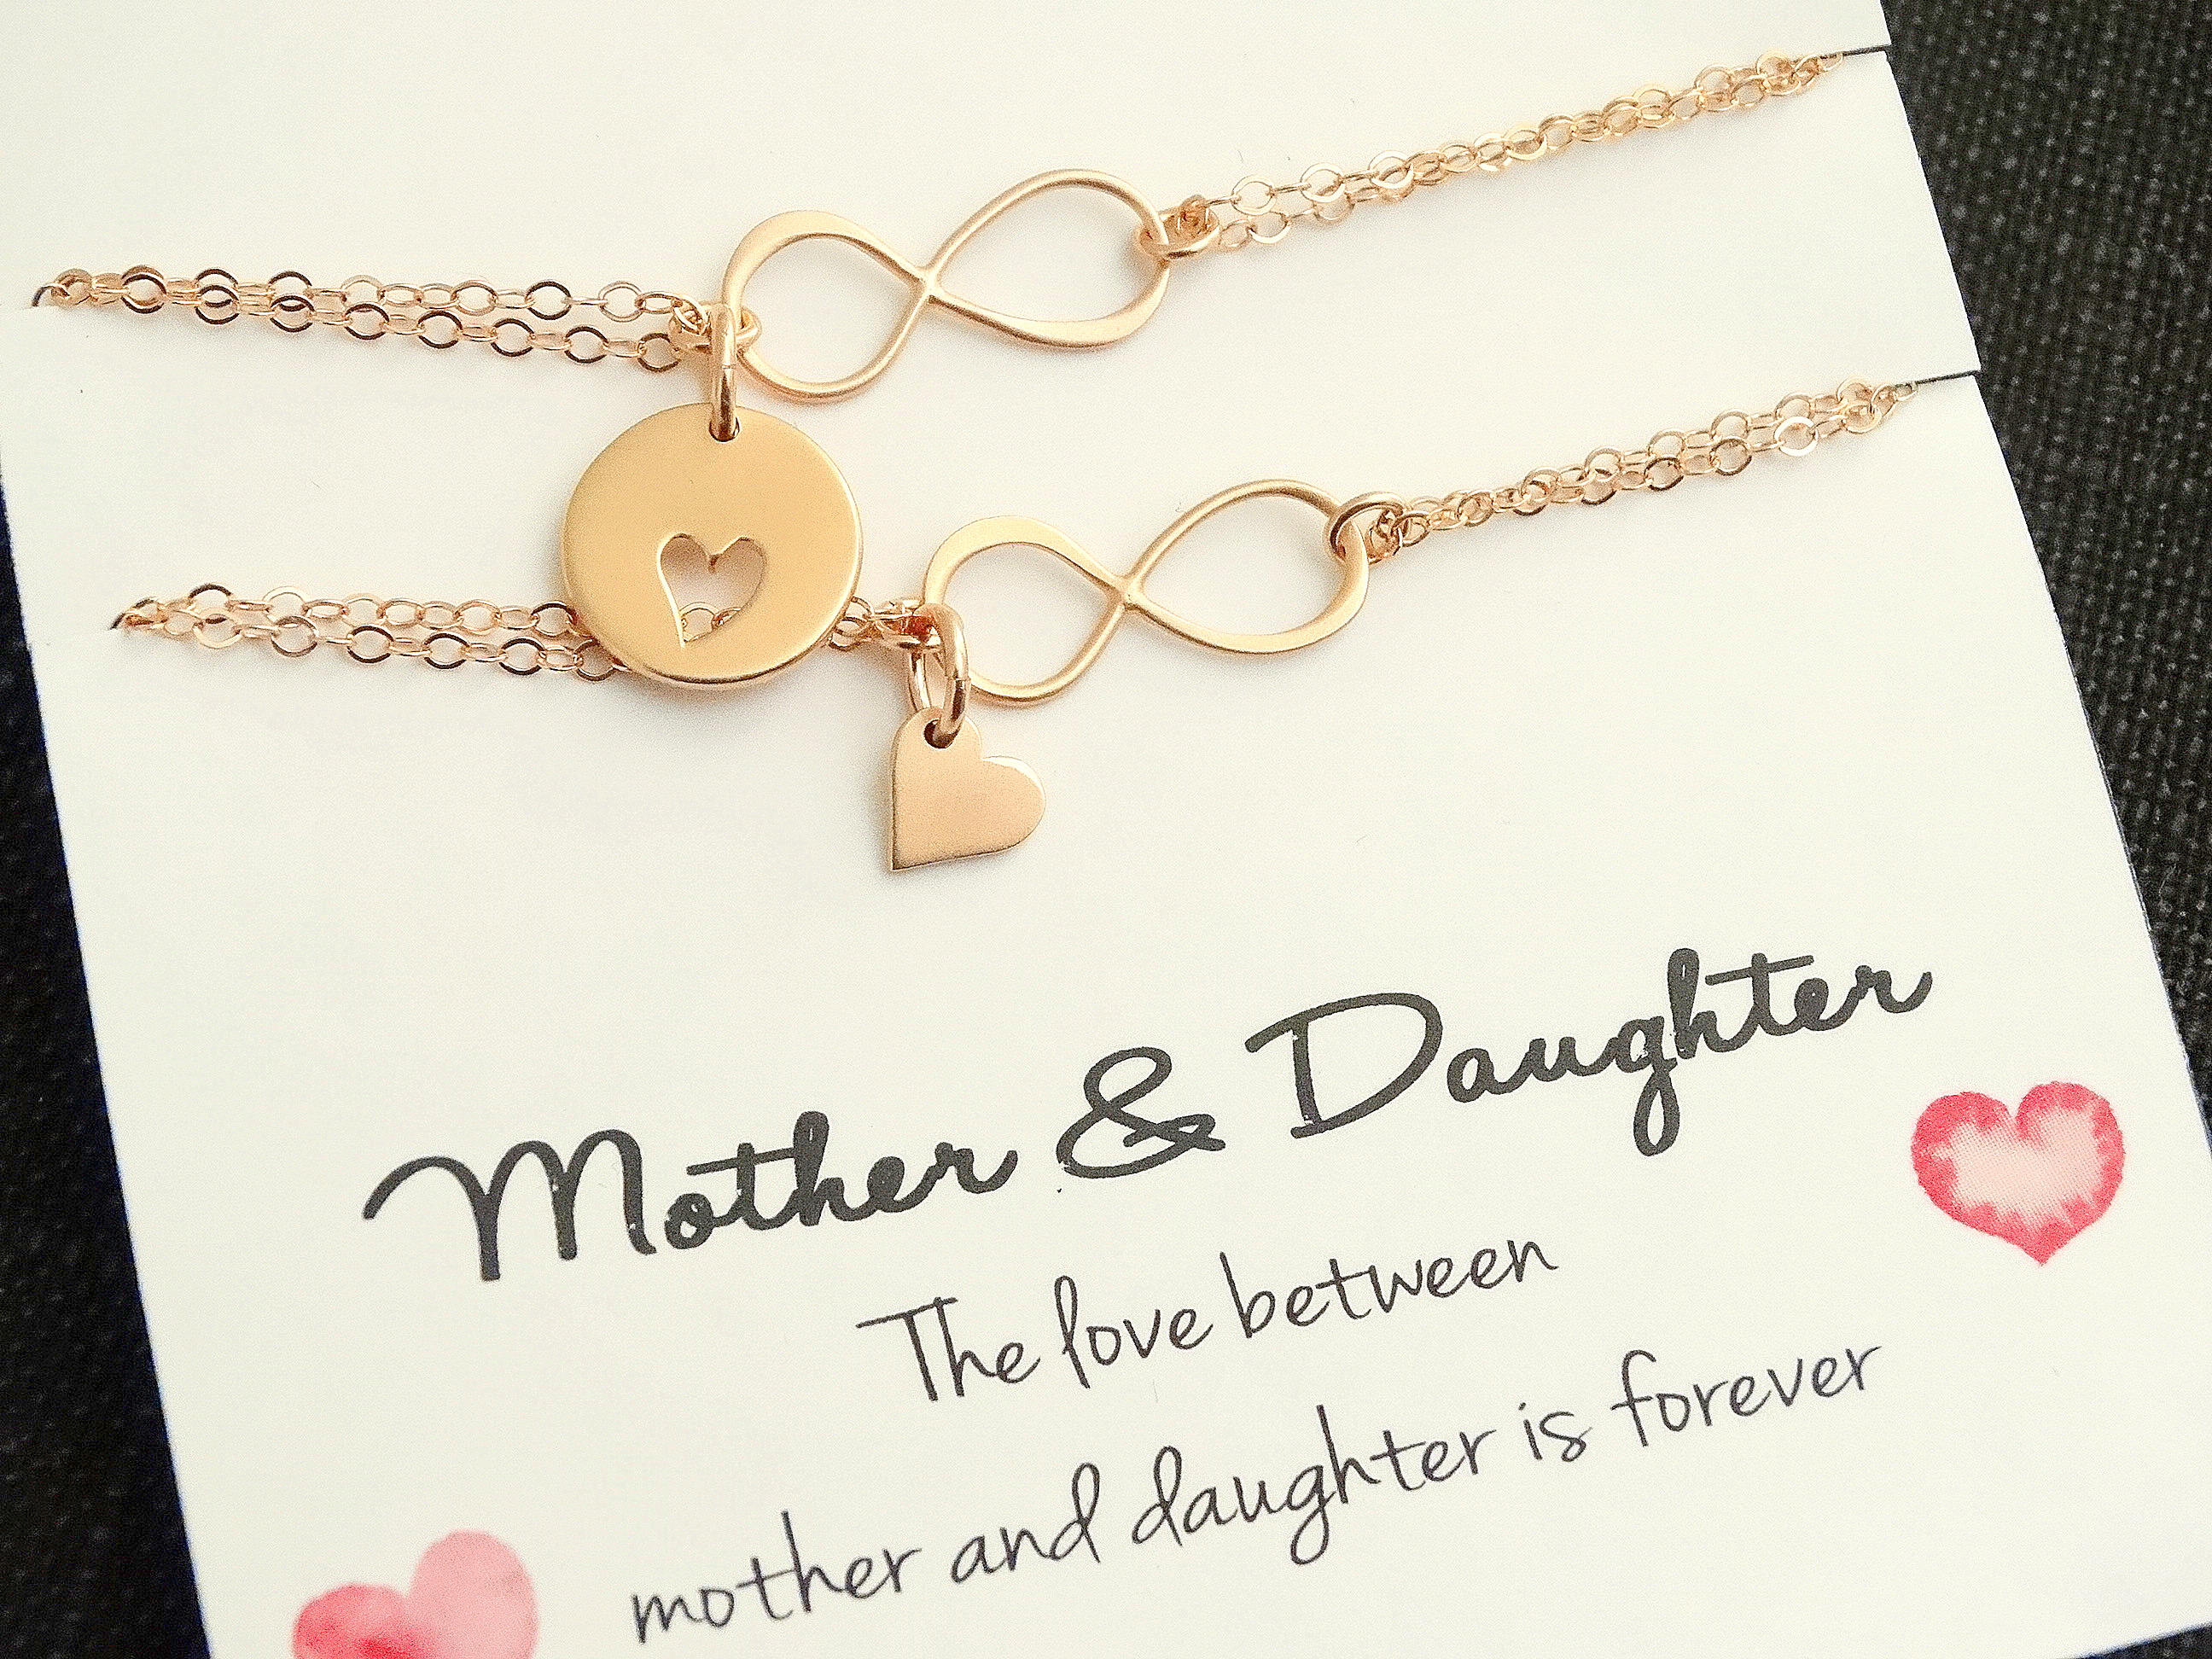 mothers edition by day announces zenjen news s mother special bracelet jewelz zen